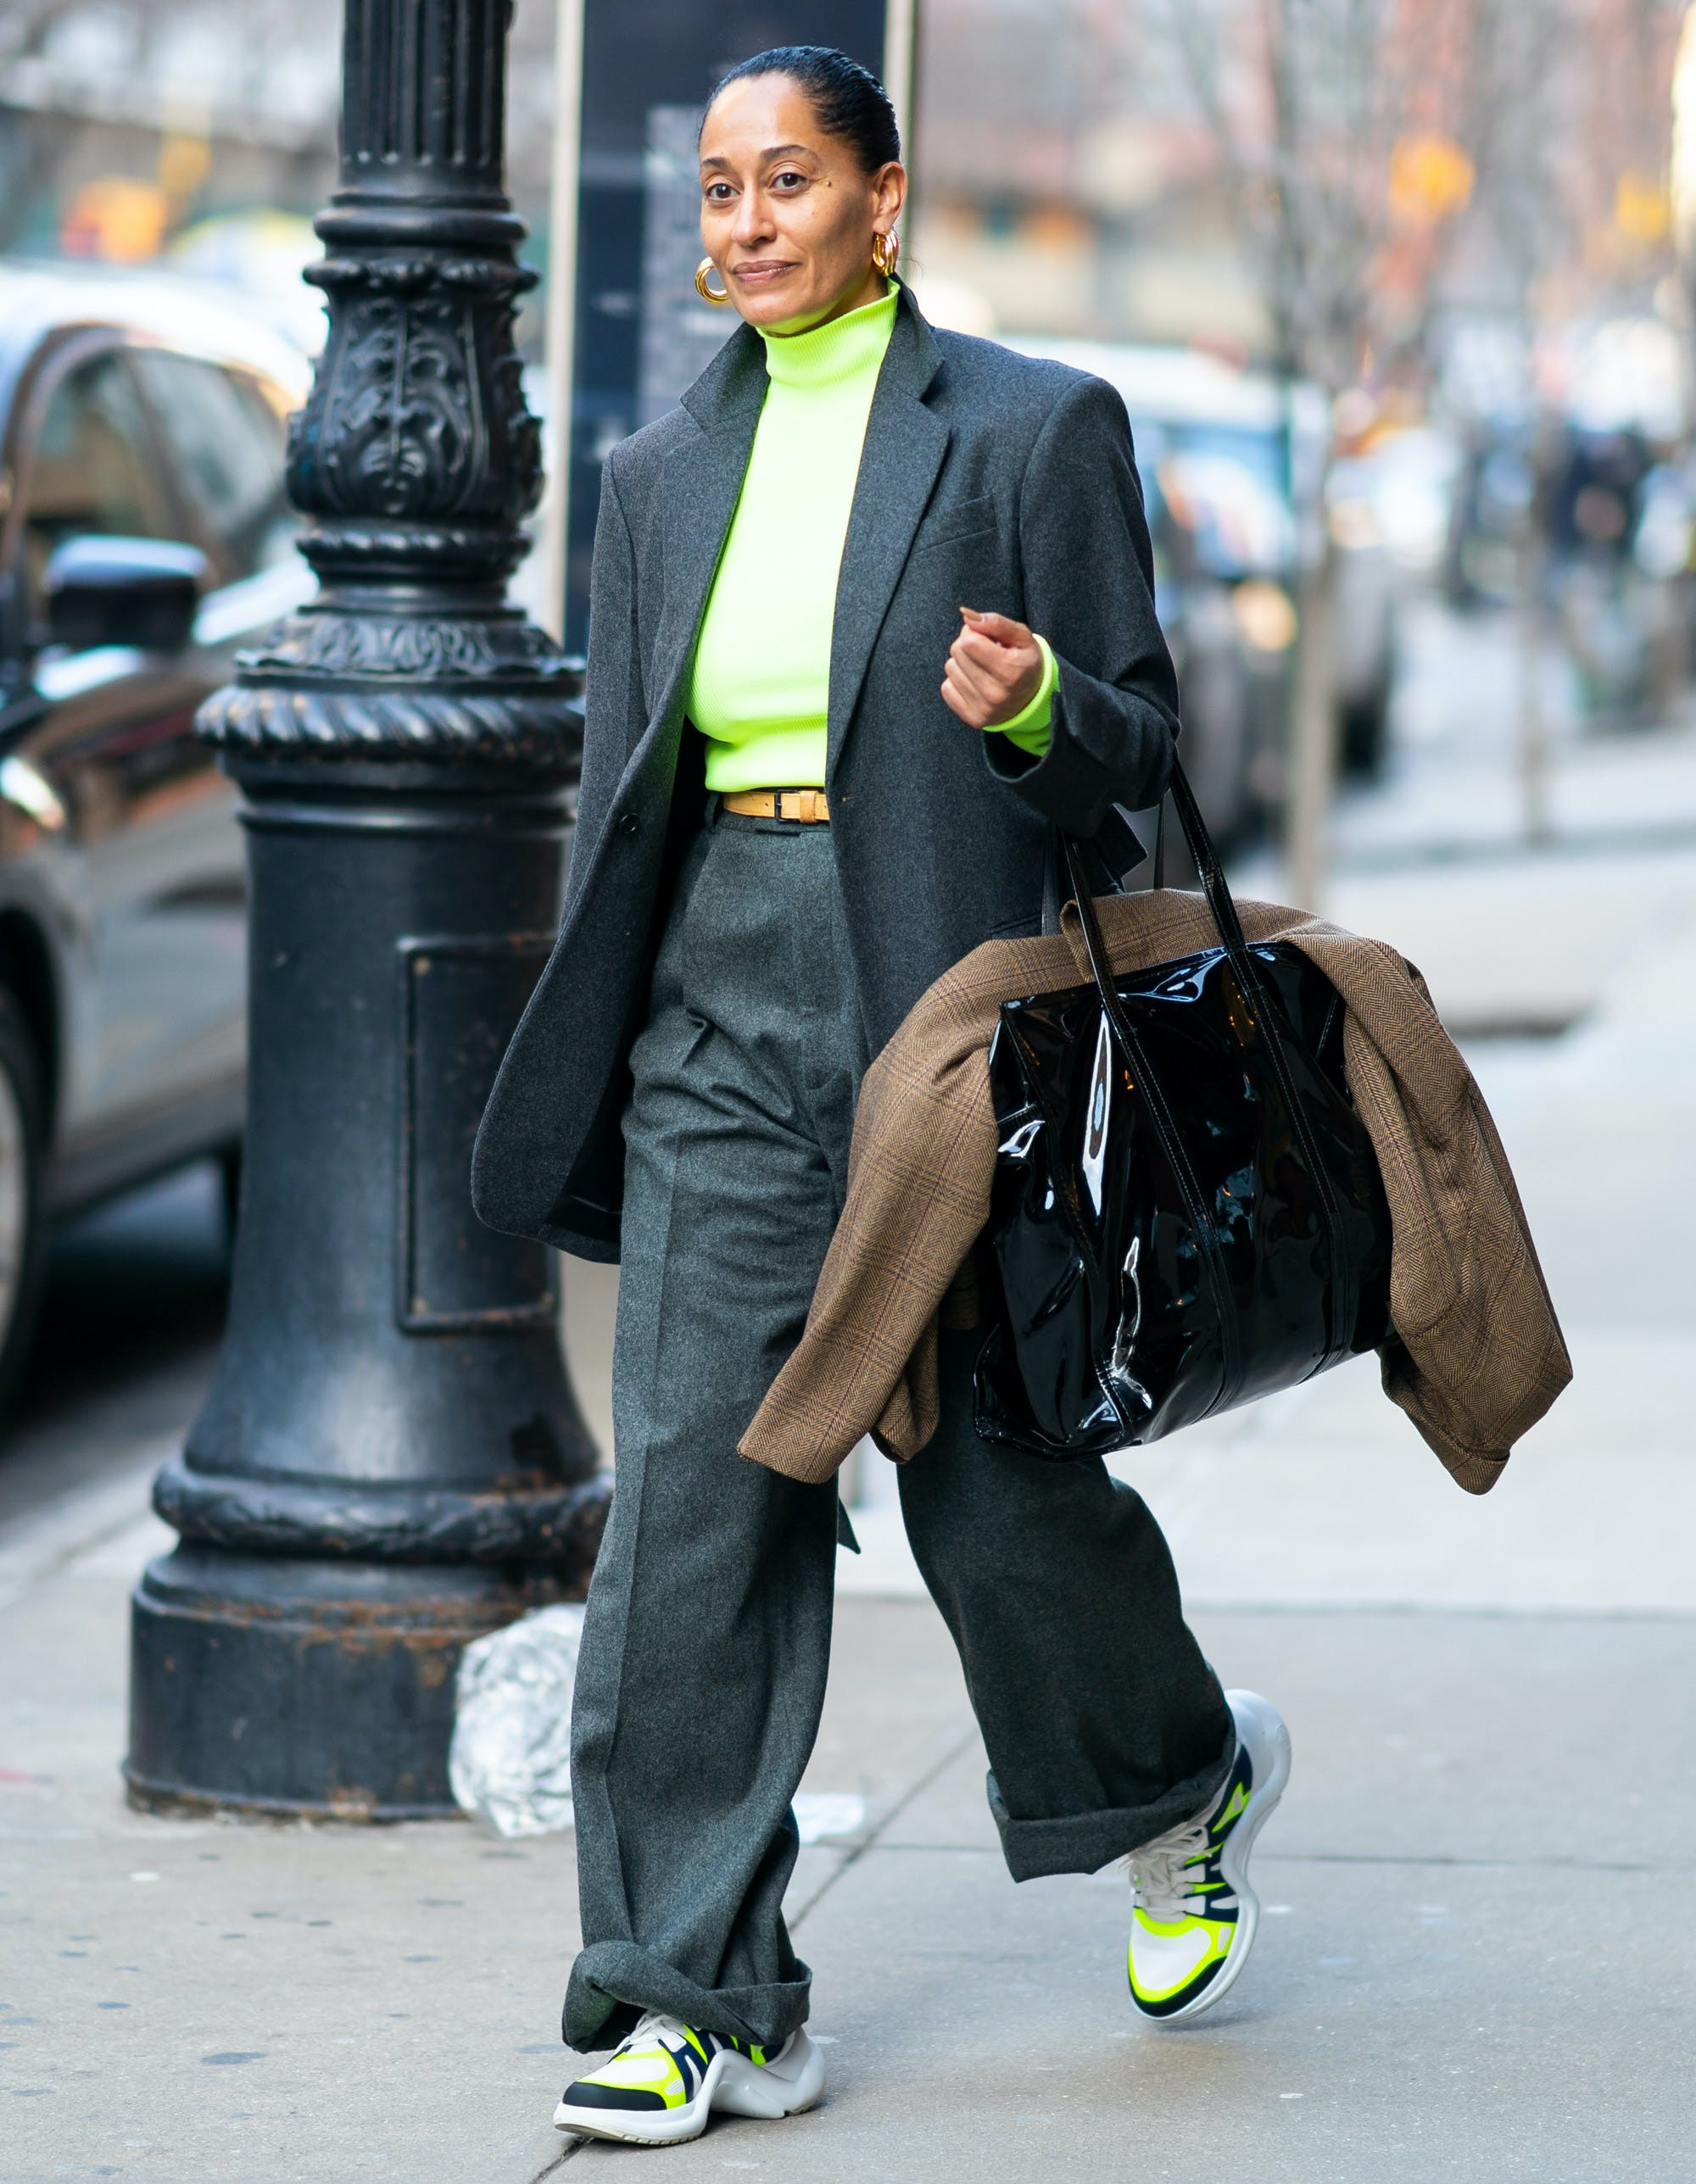 tracee ellis ross wearing a gray suit with neon